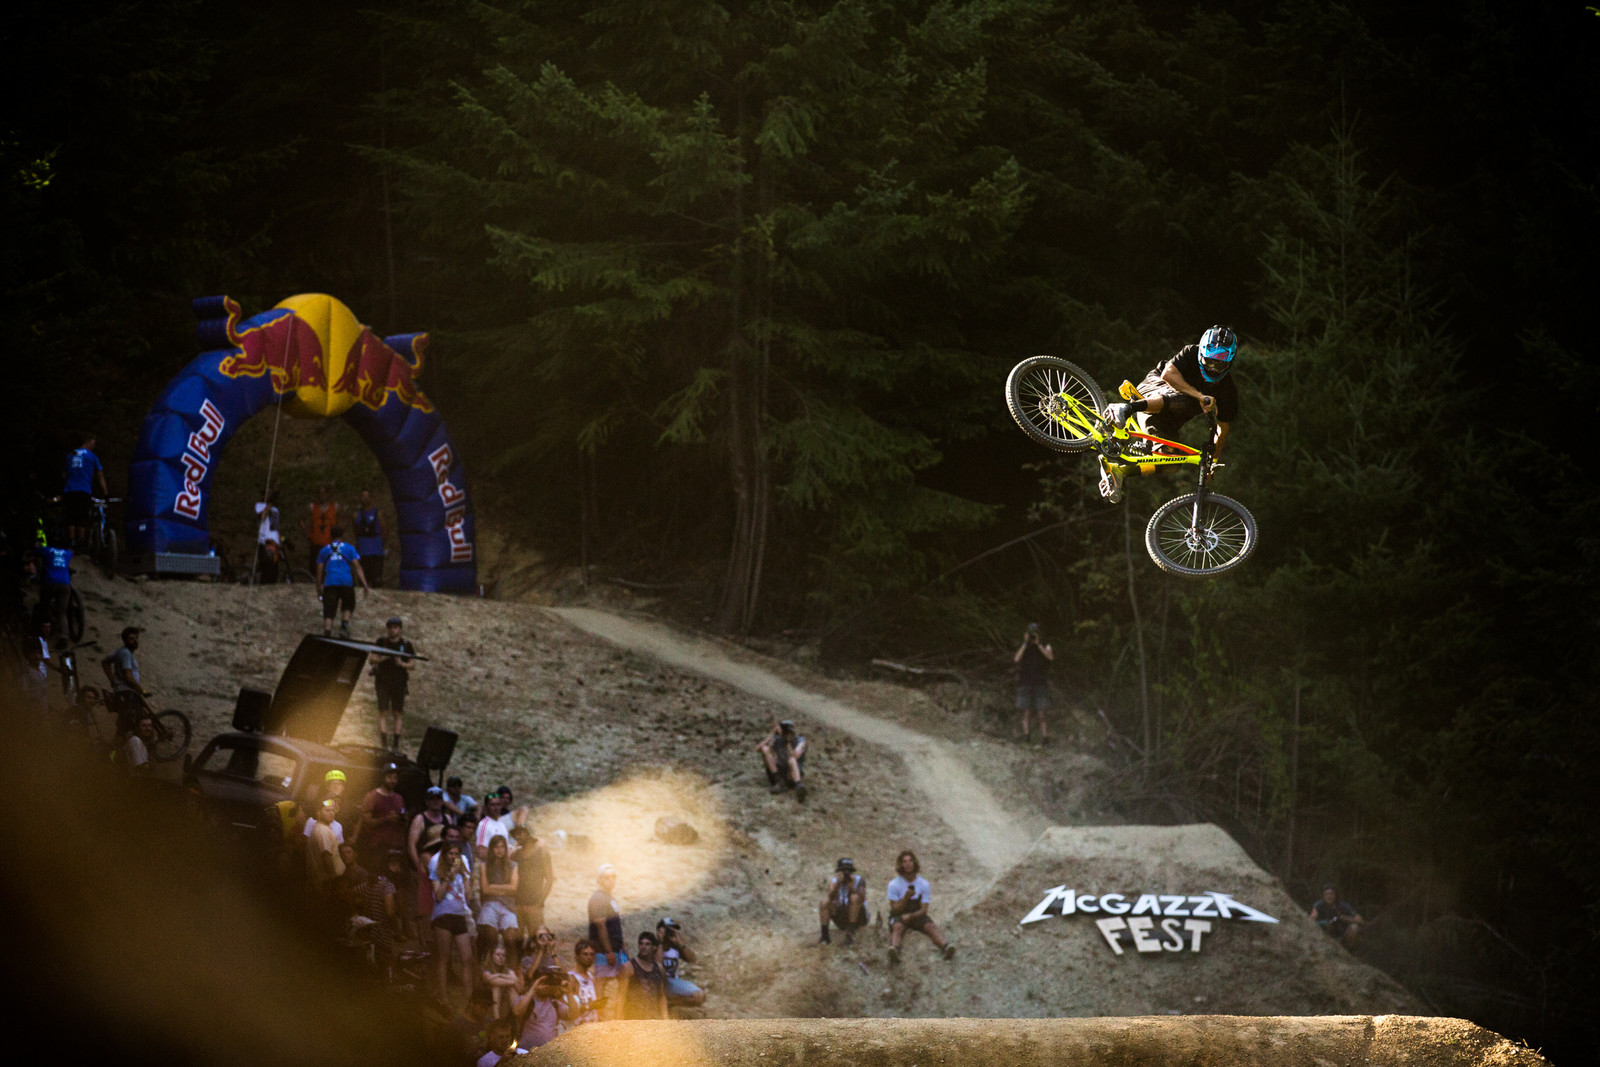 Jackson Davis - McGazza Fest Dream Track Jam - Mountain Biking Pictures - Vital MTB